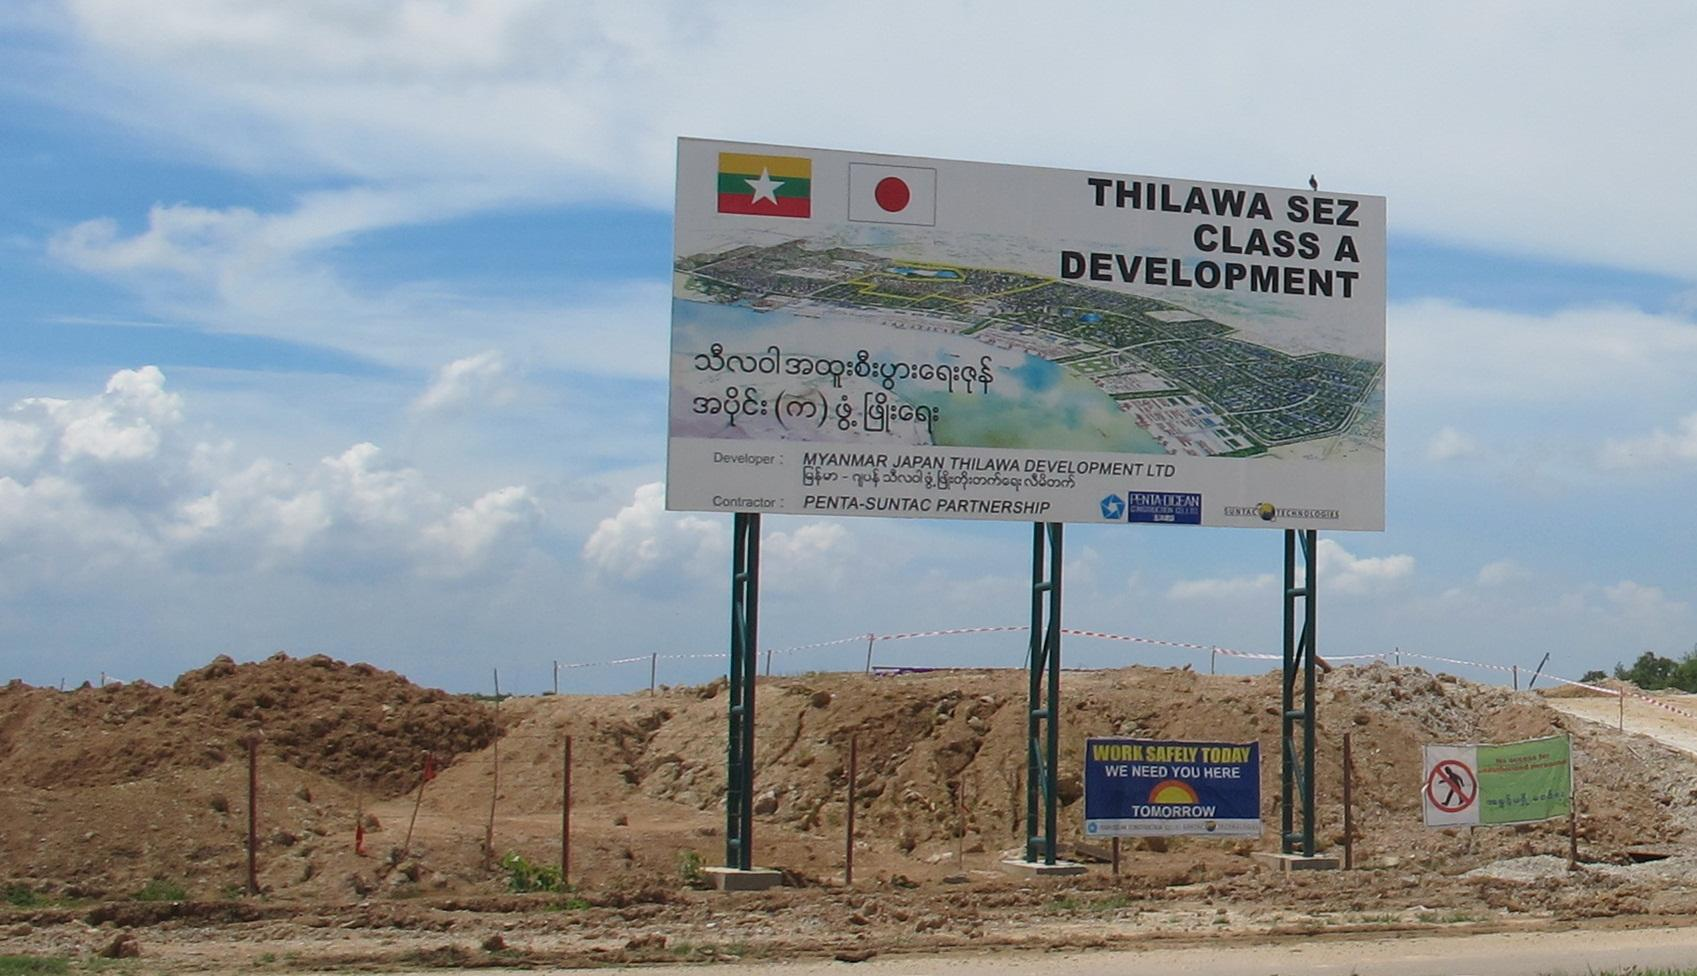 [CropImg]thiliwa special economic zone myanmar industrial estate.jpg